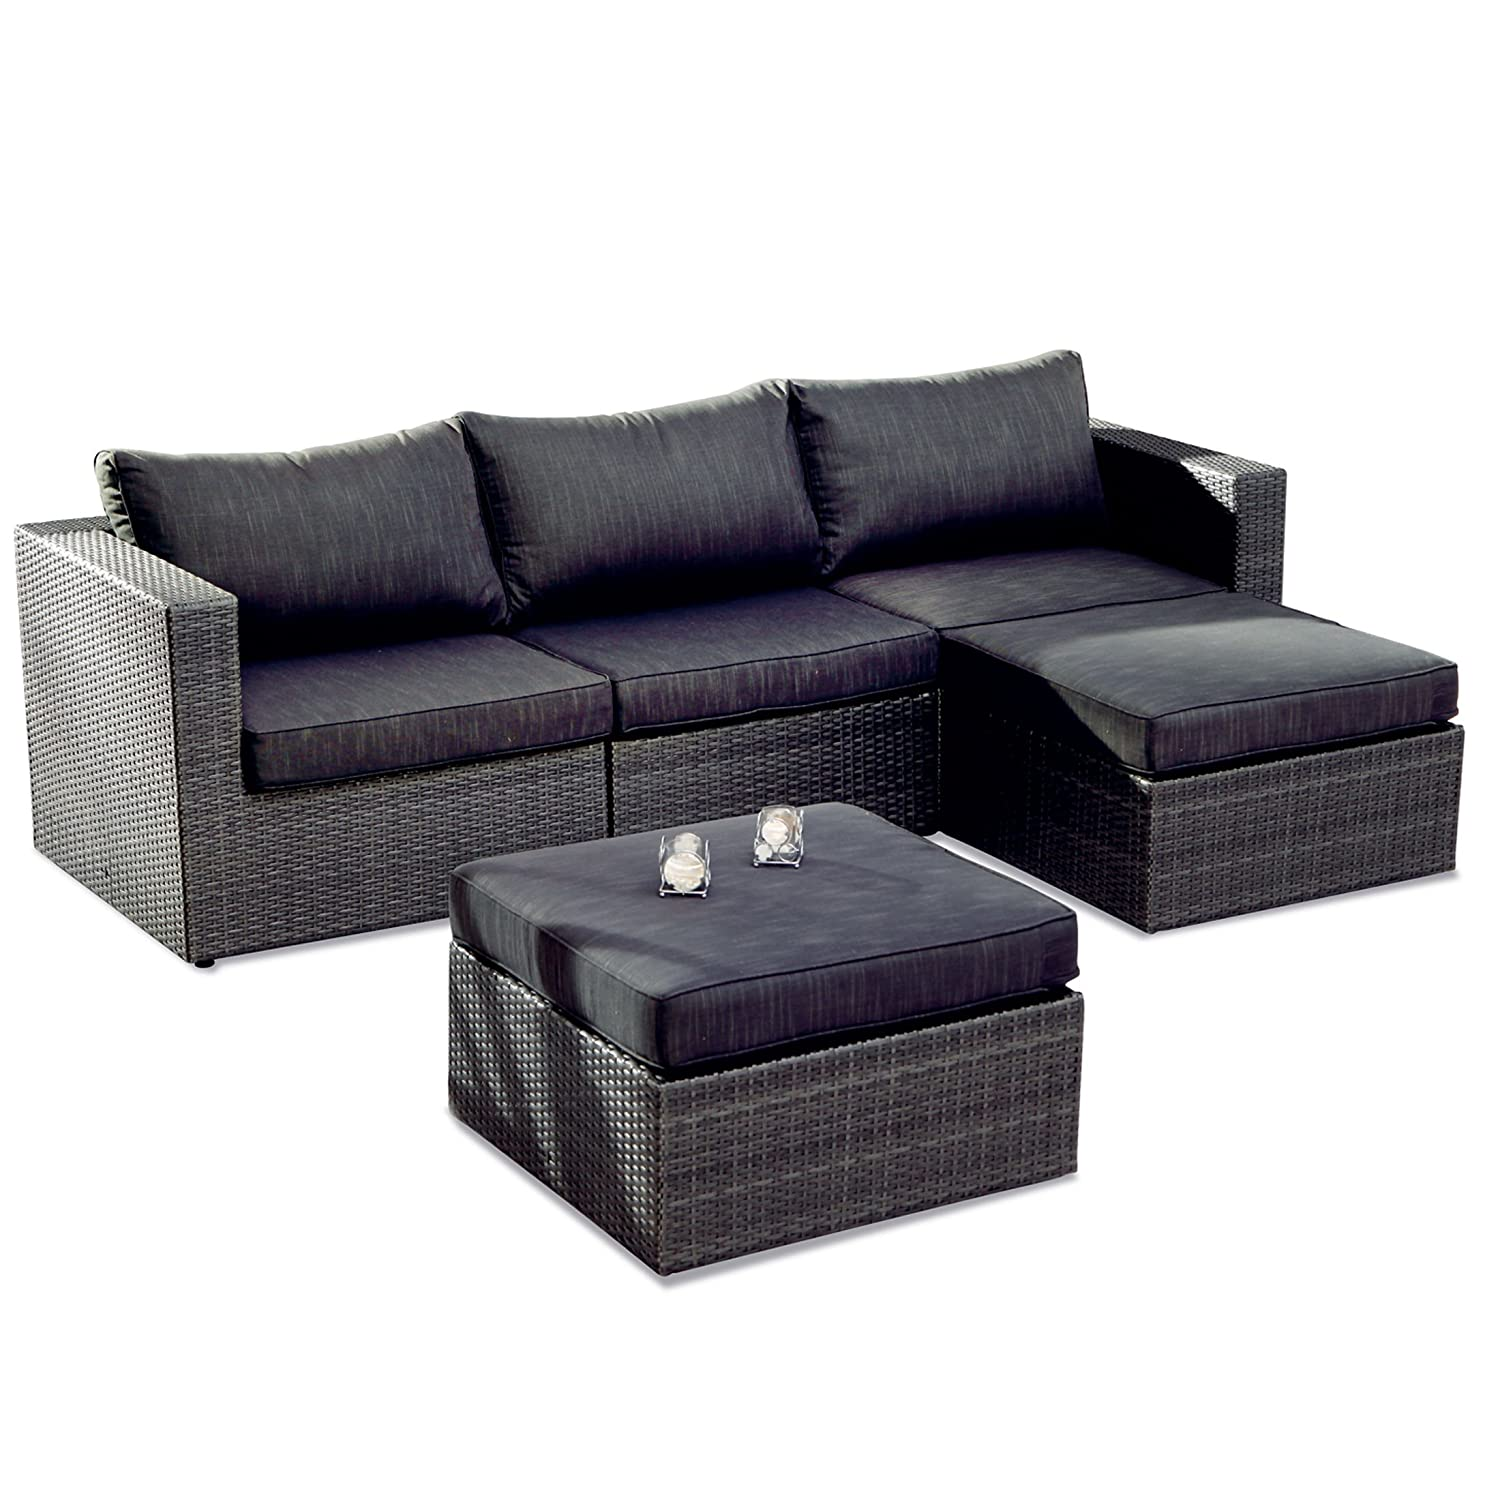 BEST 98895053 5-teilig Loungegruppe Aruba, anthrazit